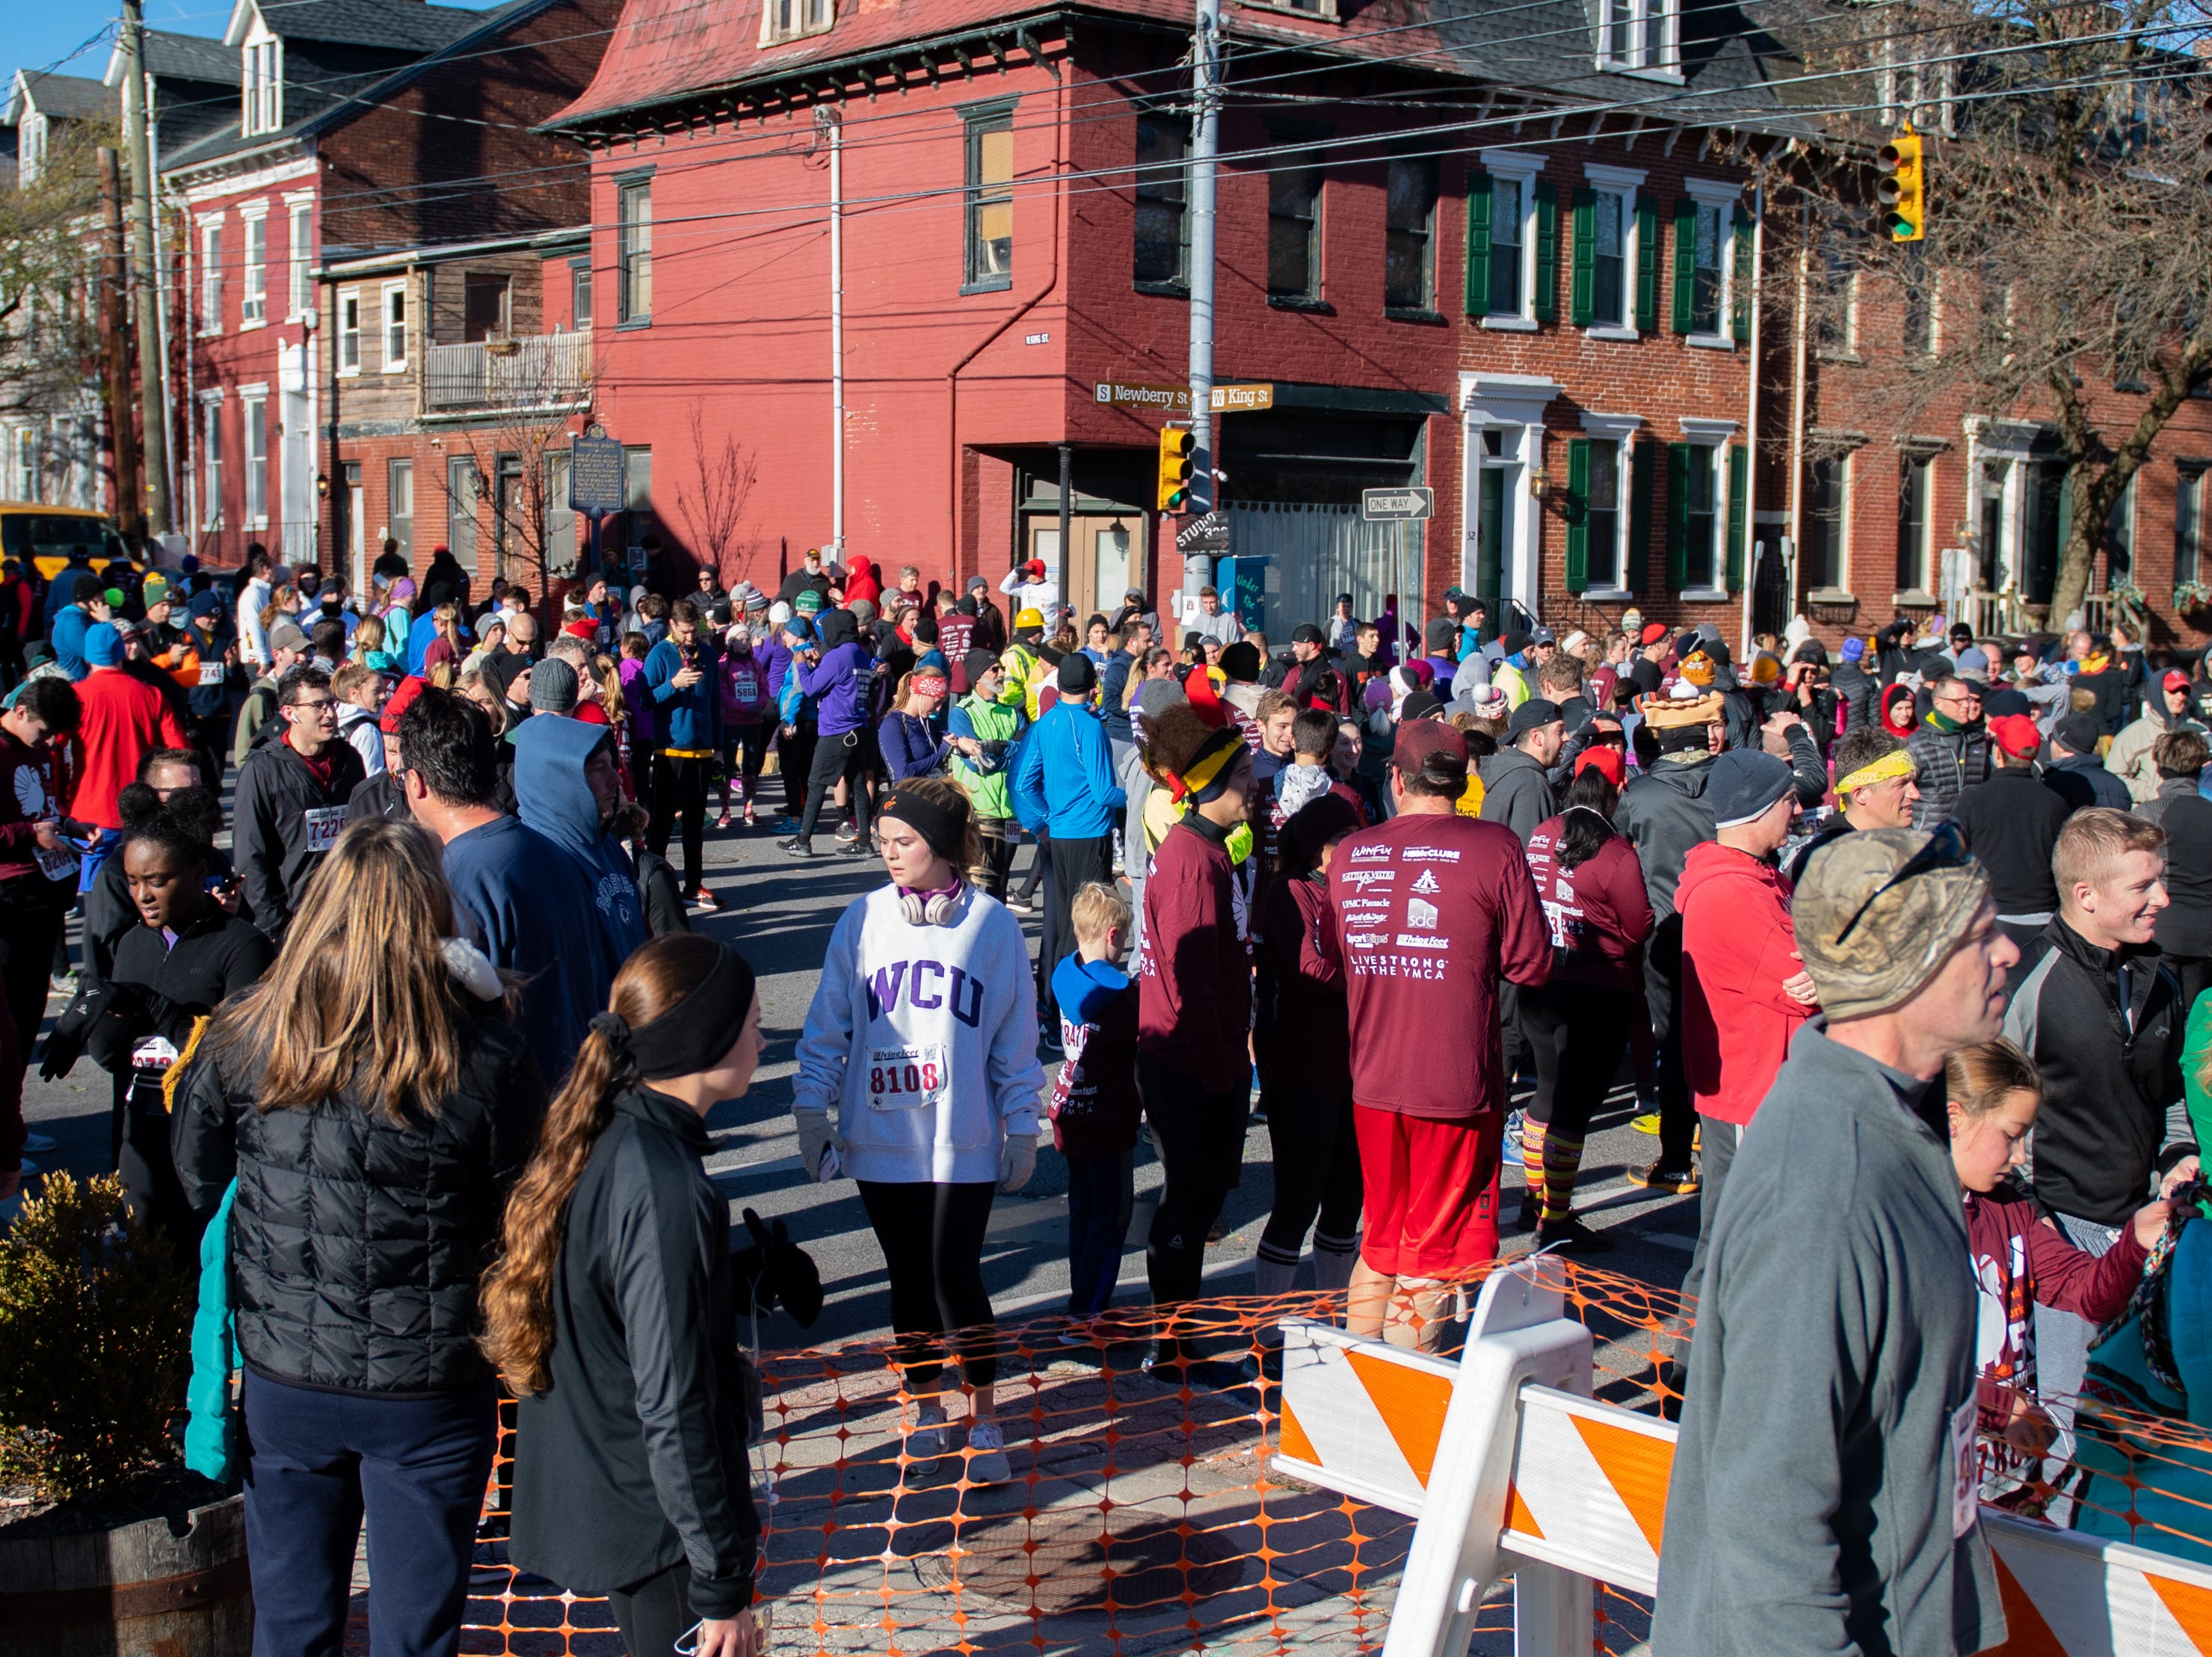 Racers wait at the finish line during the 22nd Annual Turkey Trot 5K, on Thanksgiving Day, November 22, 2018.